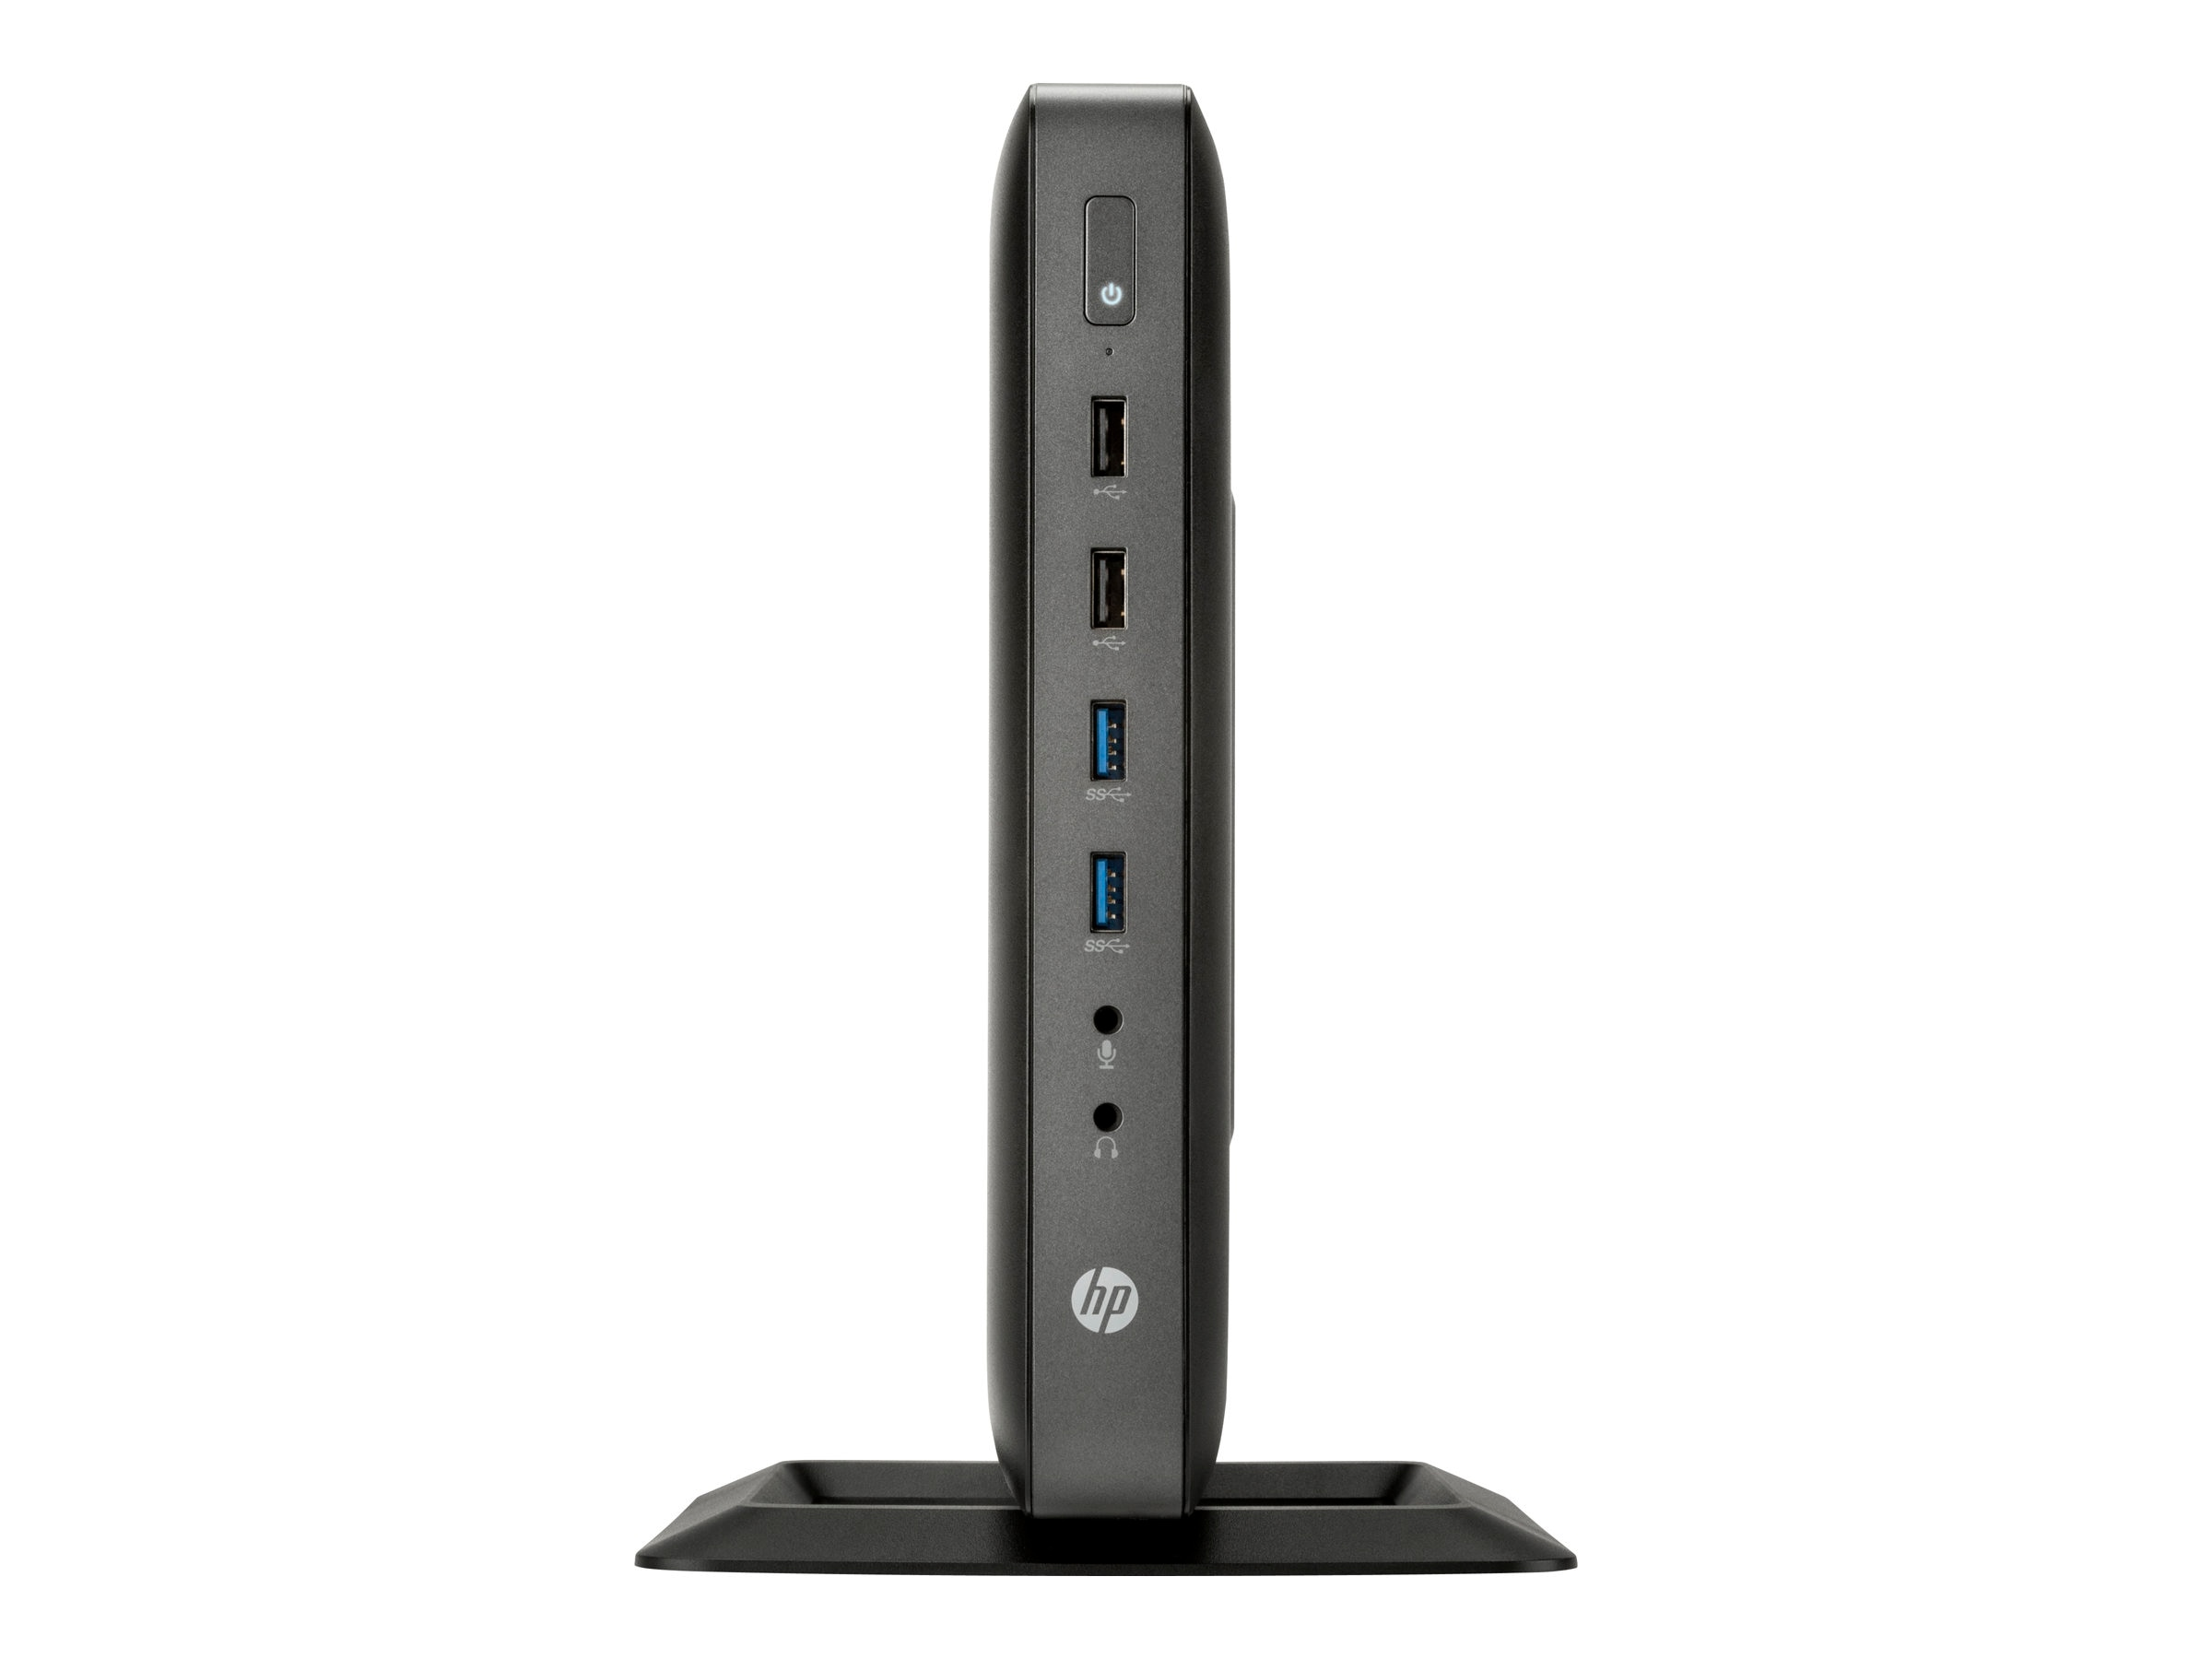 HP t620 Flexible Thin Client AMD QC GX-415GA 1.5GHz 4GB RAM 16GB Flash GbE abgn ac BT WES7P